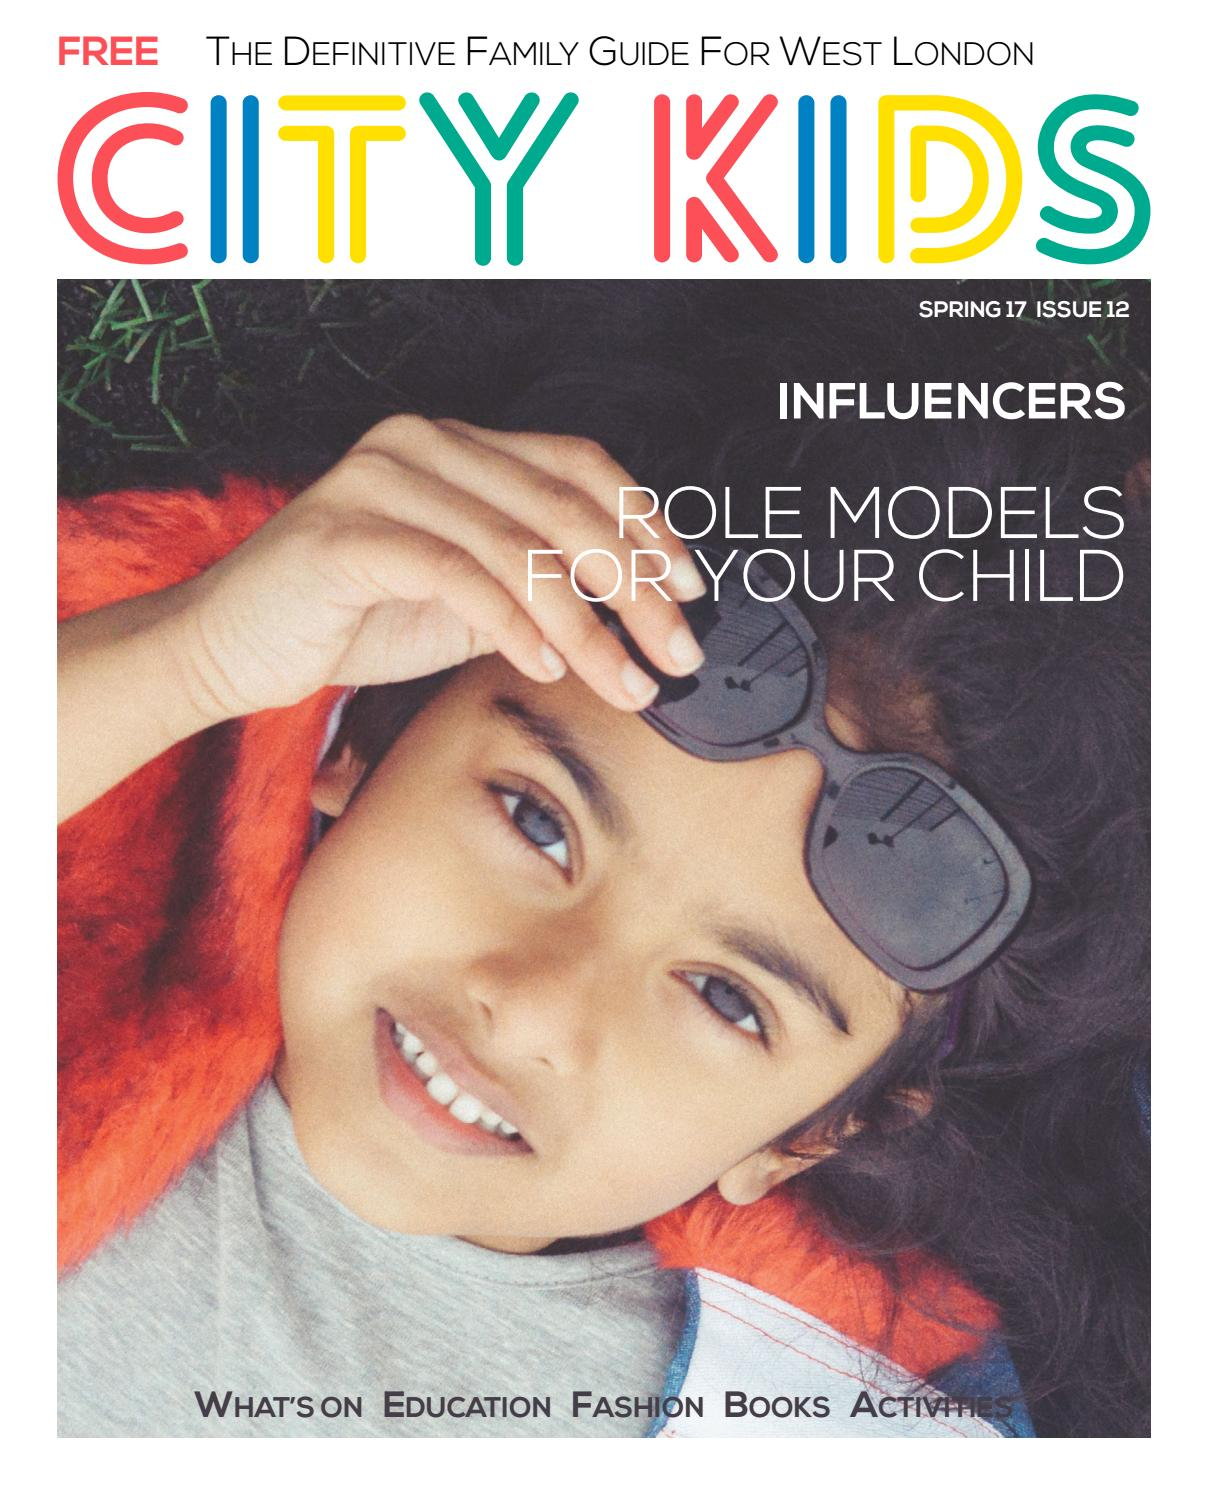 21aa9b4320595 CITY KIDS MAGAZINE SPRING 2017 ISSUE 12 by CITYKIDS - issuu